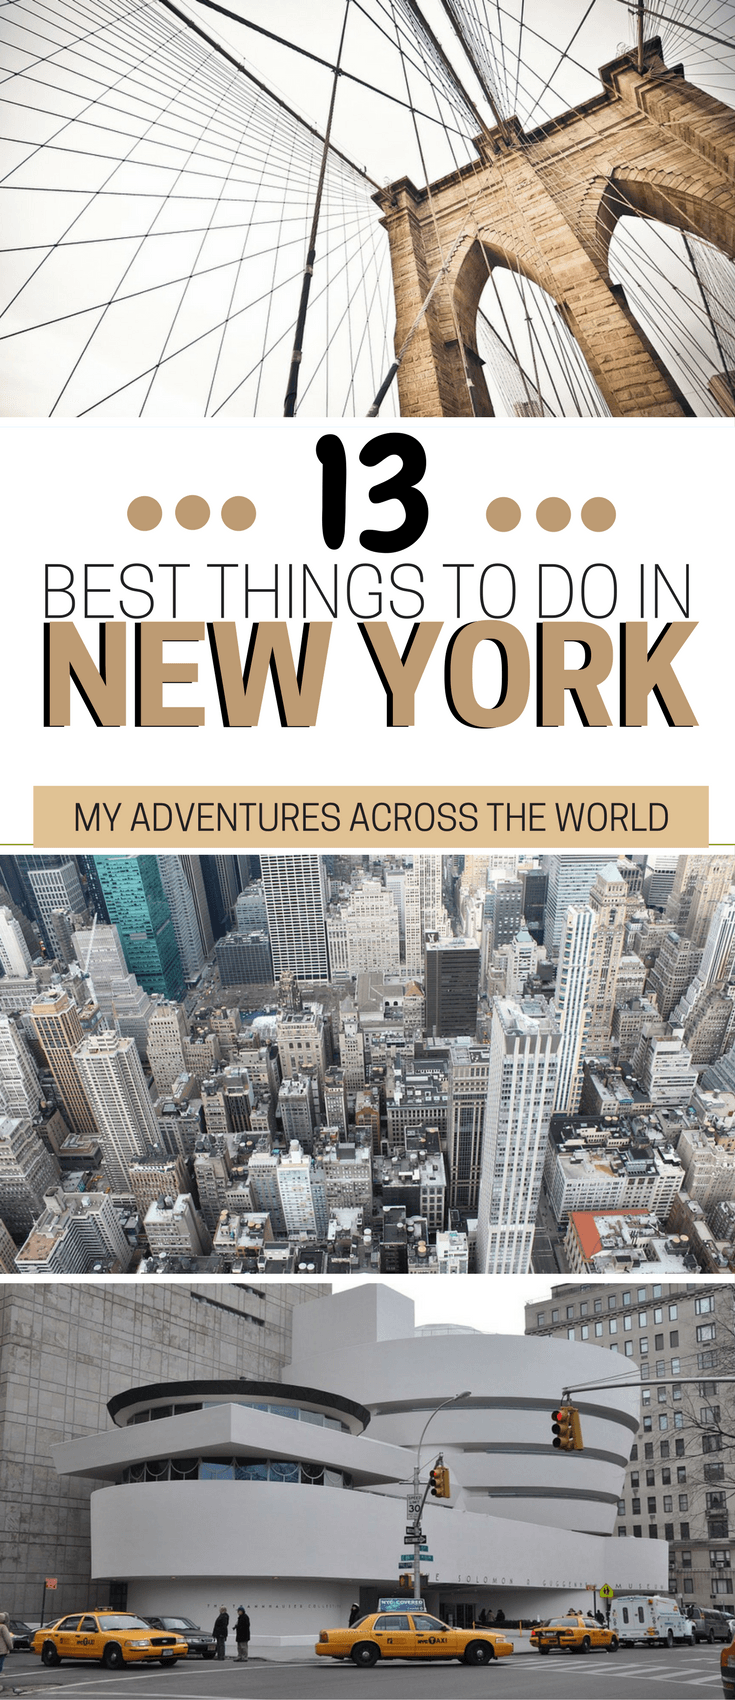 Read about the 13 best things to do in New York - via @clautavani